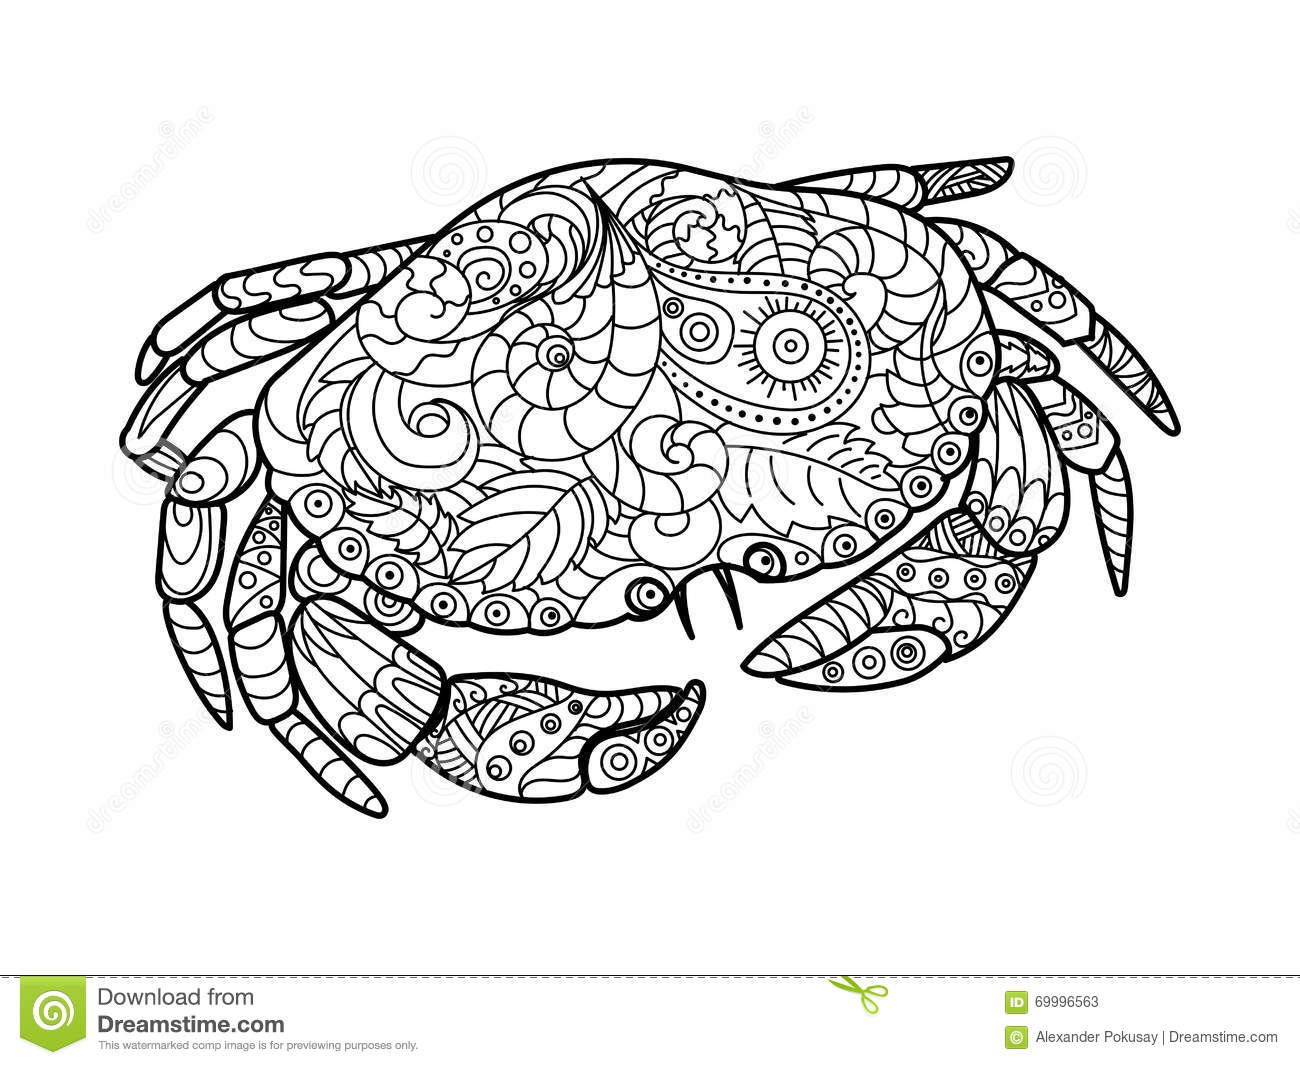 crab coloring pages beautiful click the crab coloring pages with